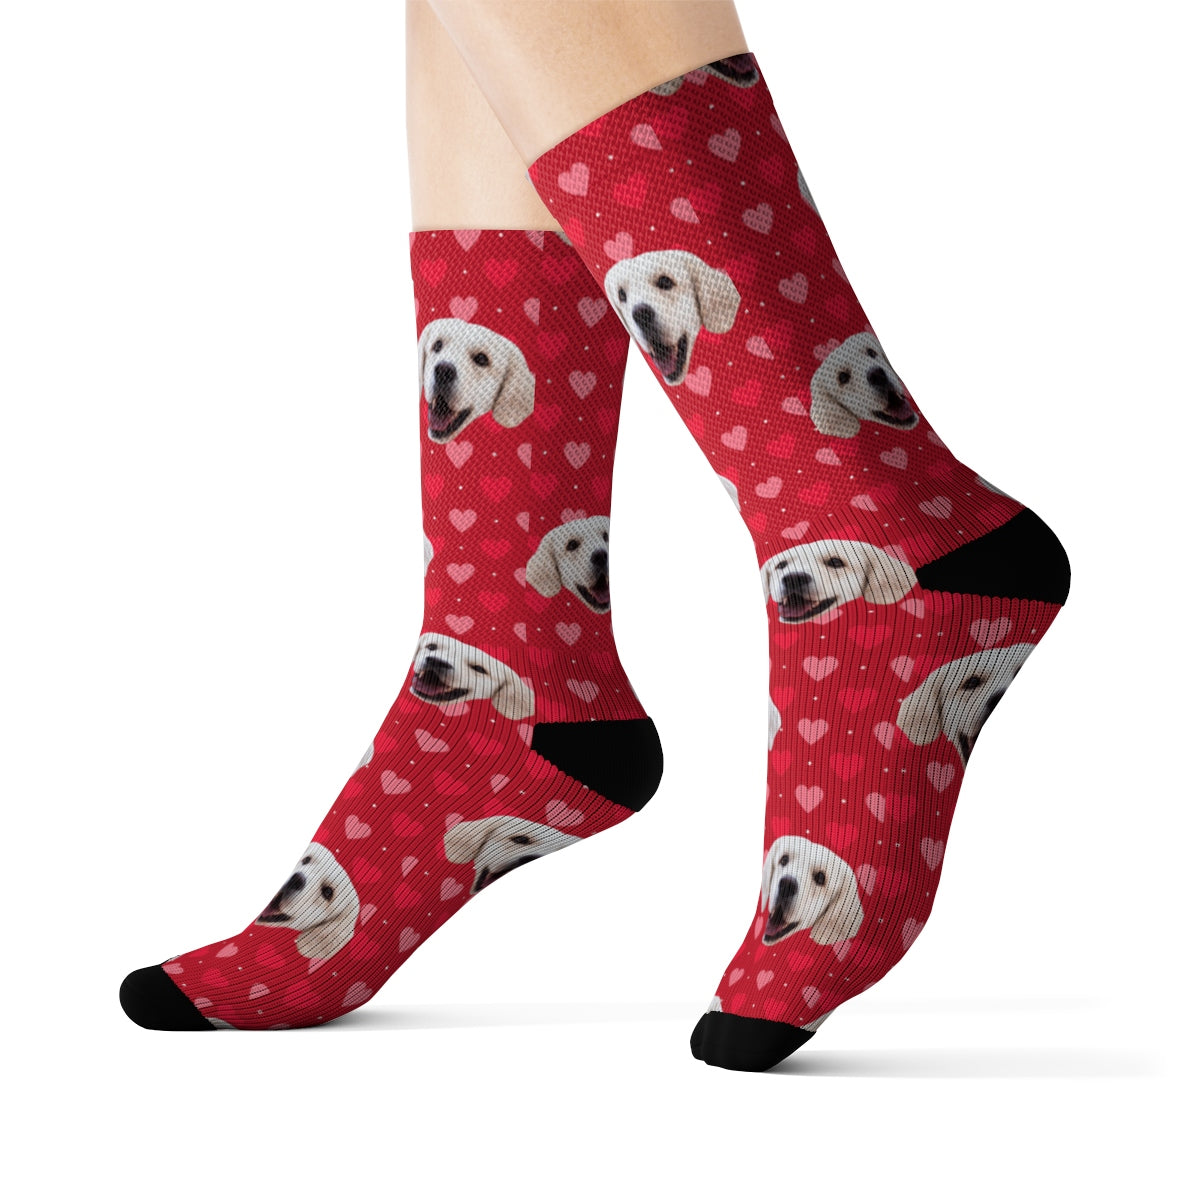 Your Pet On Socks - Hearts